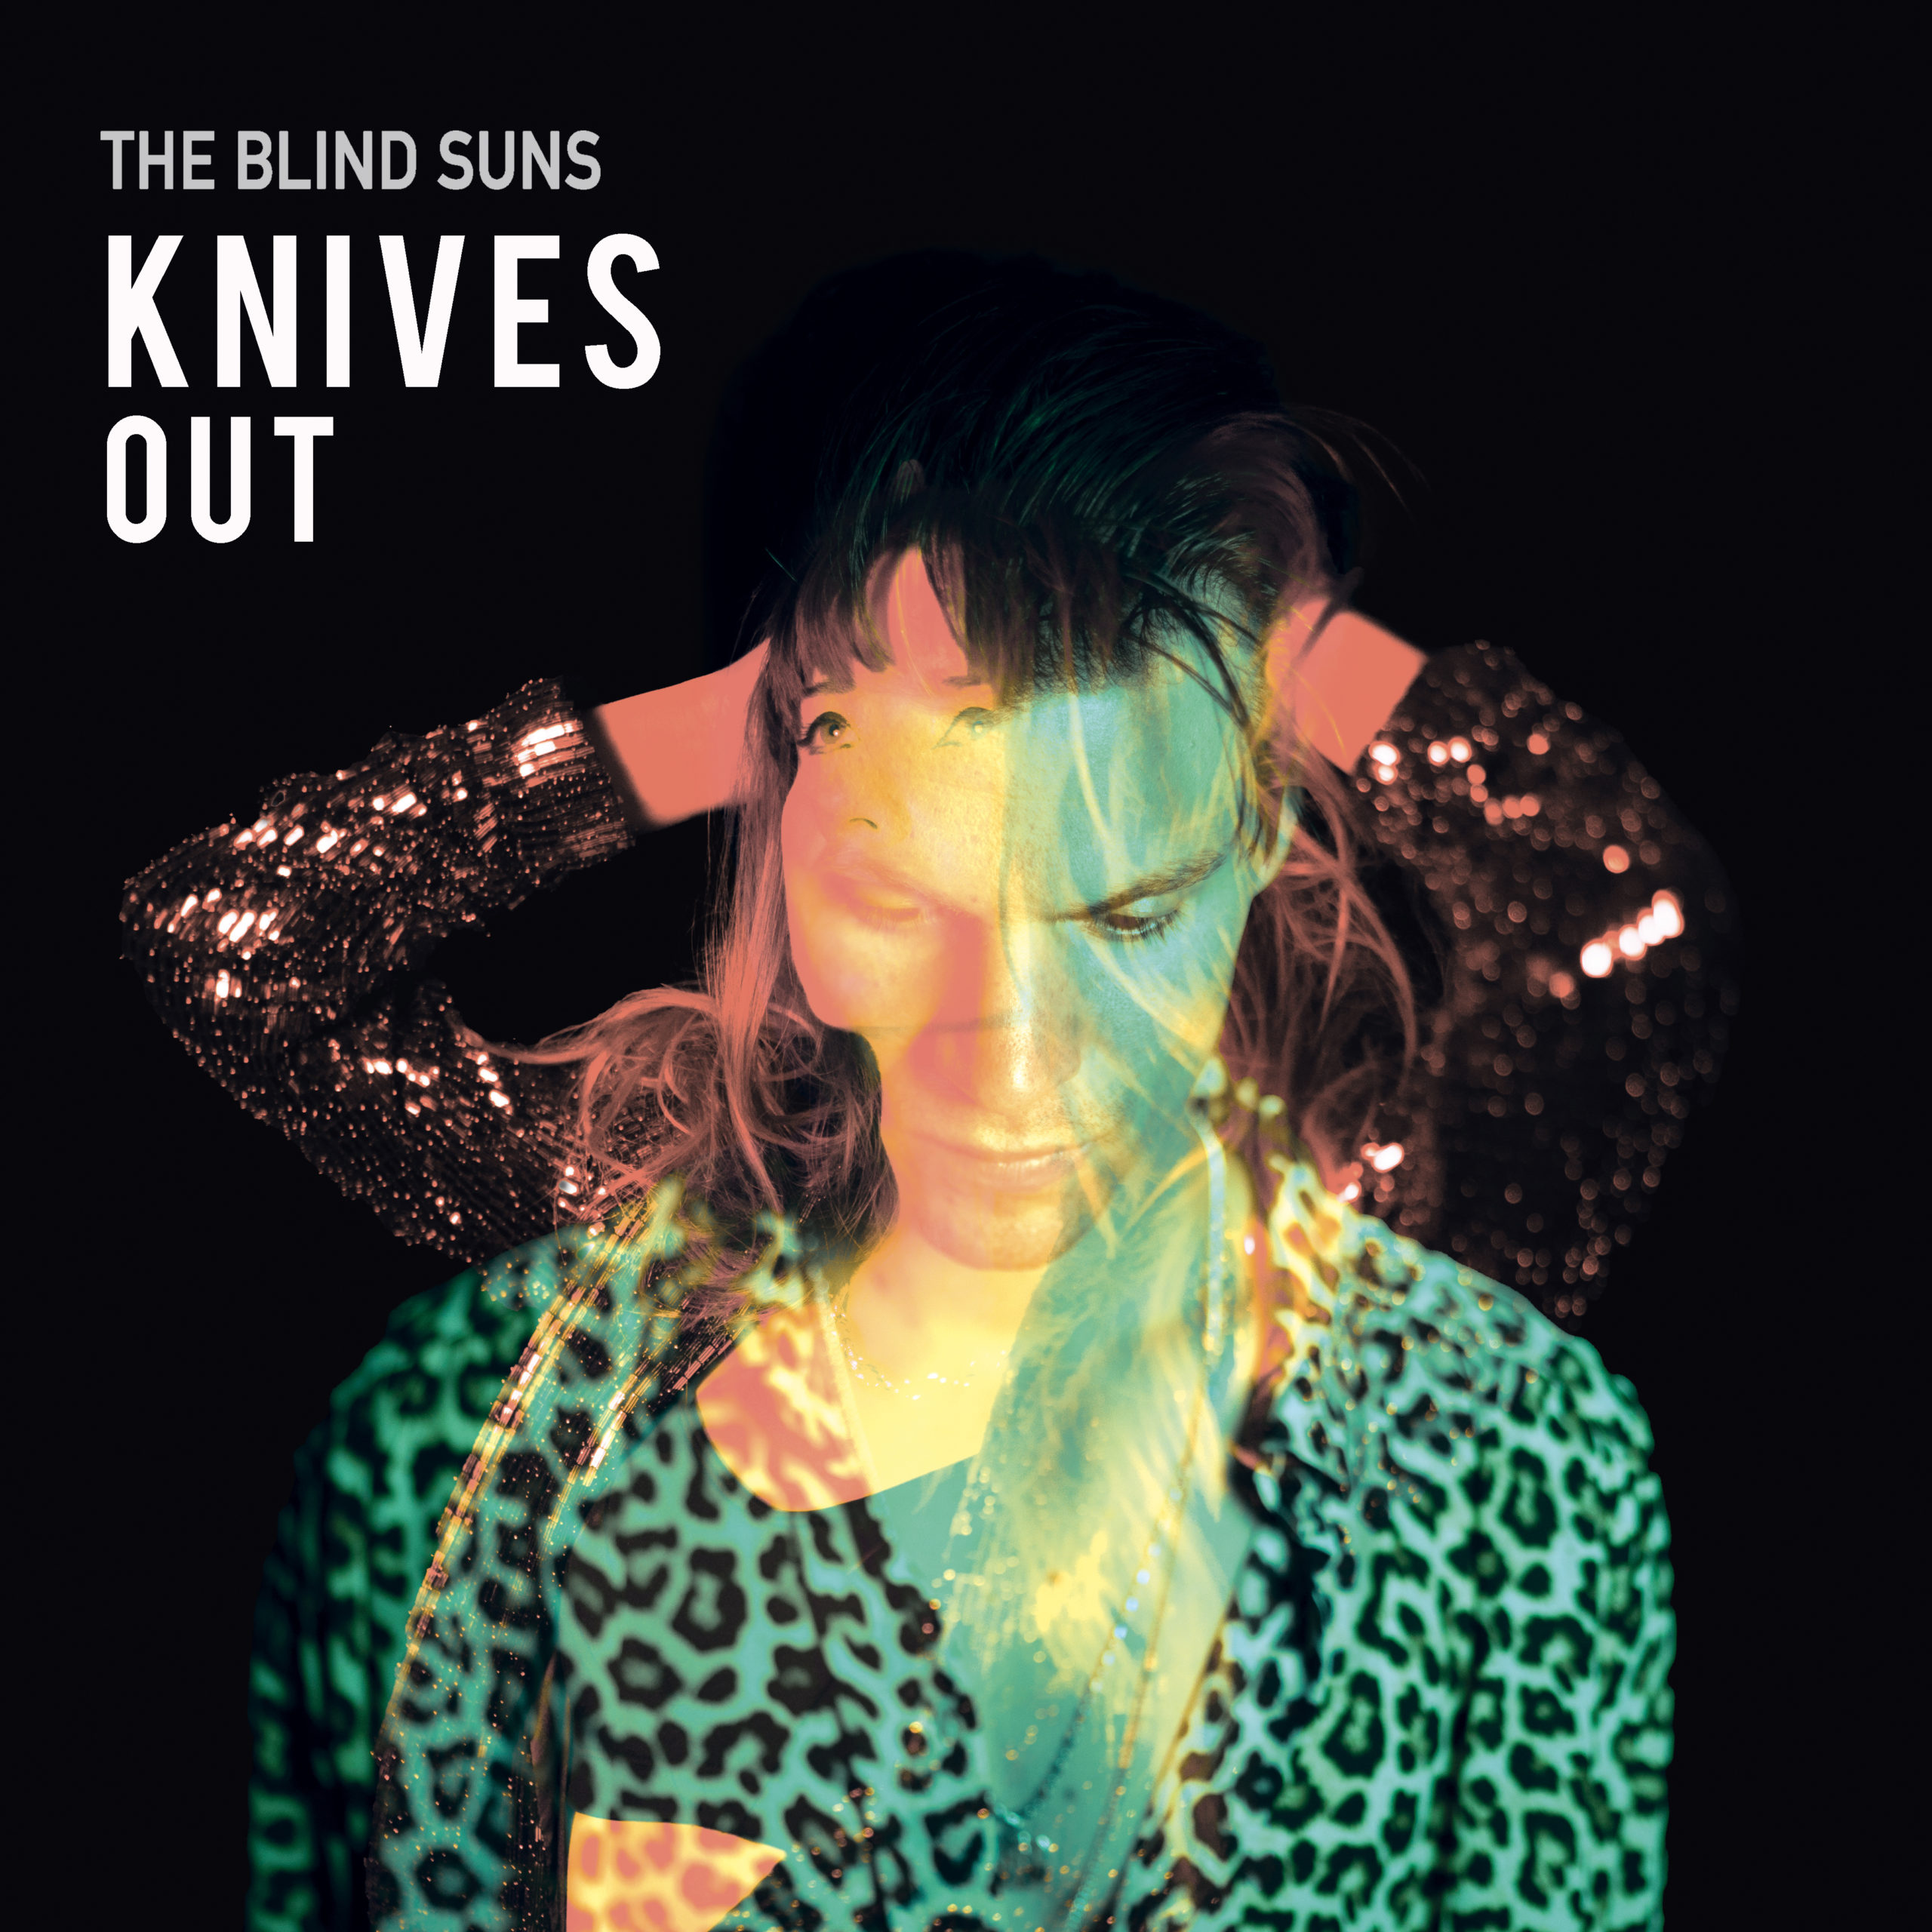 THE BLIND SUNS - Knives out